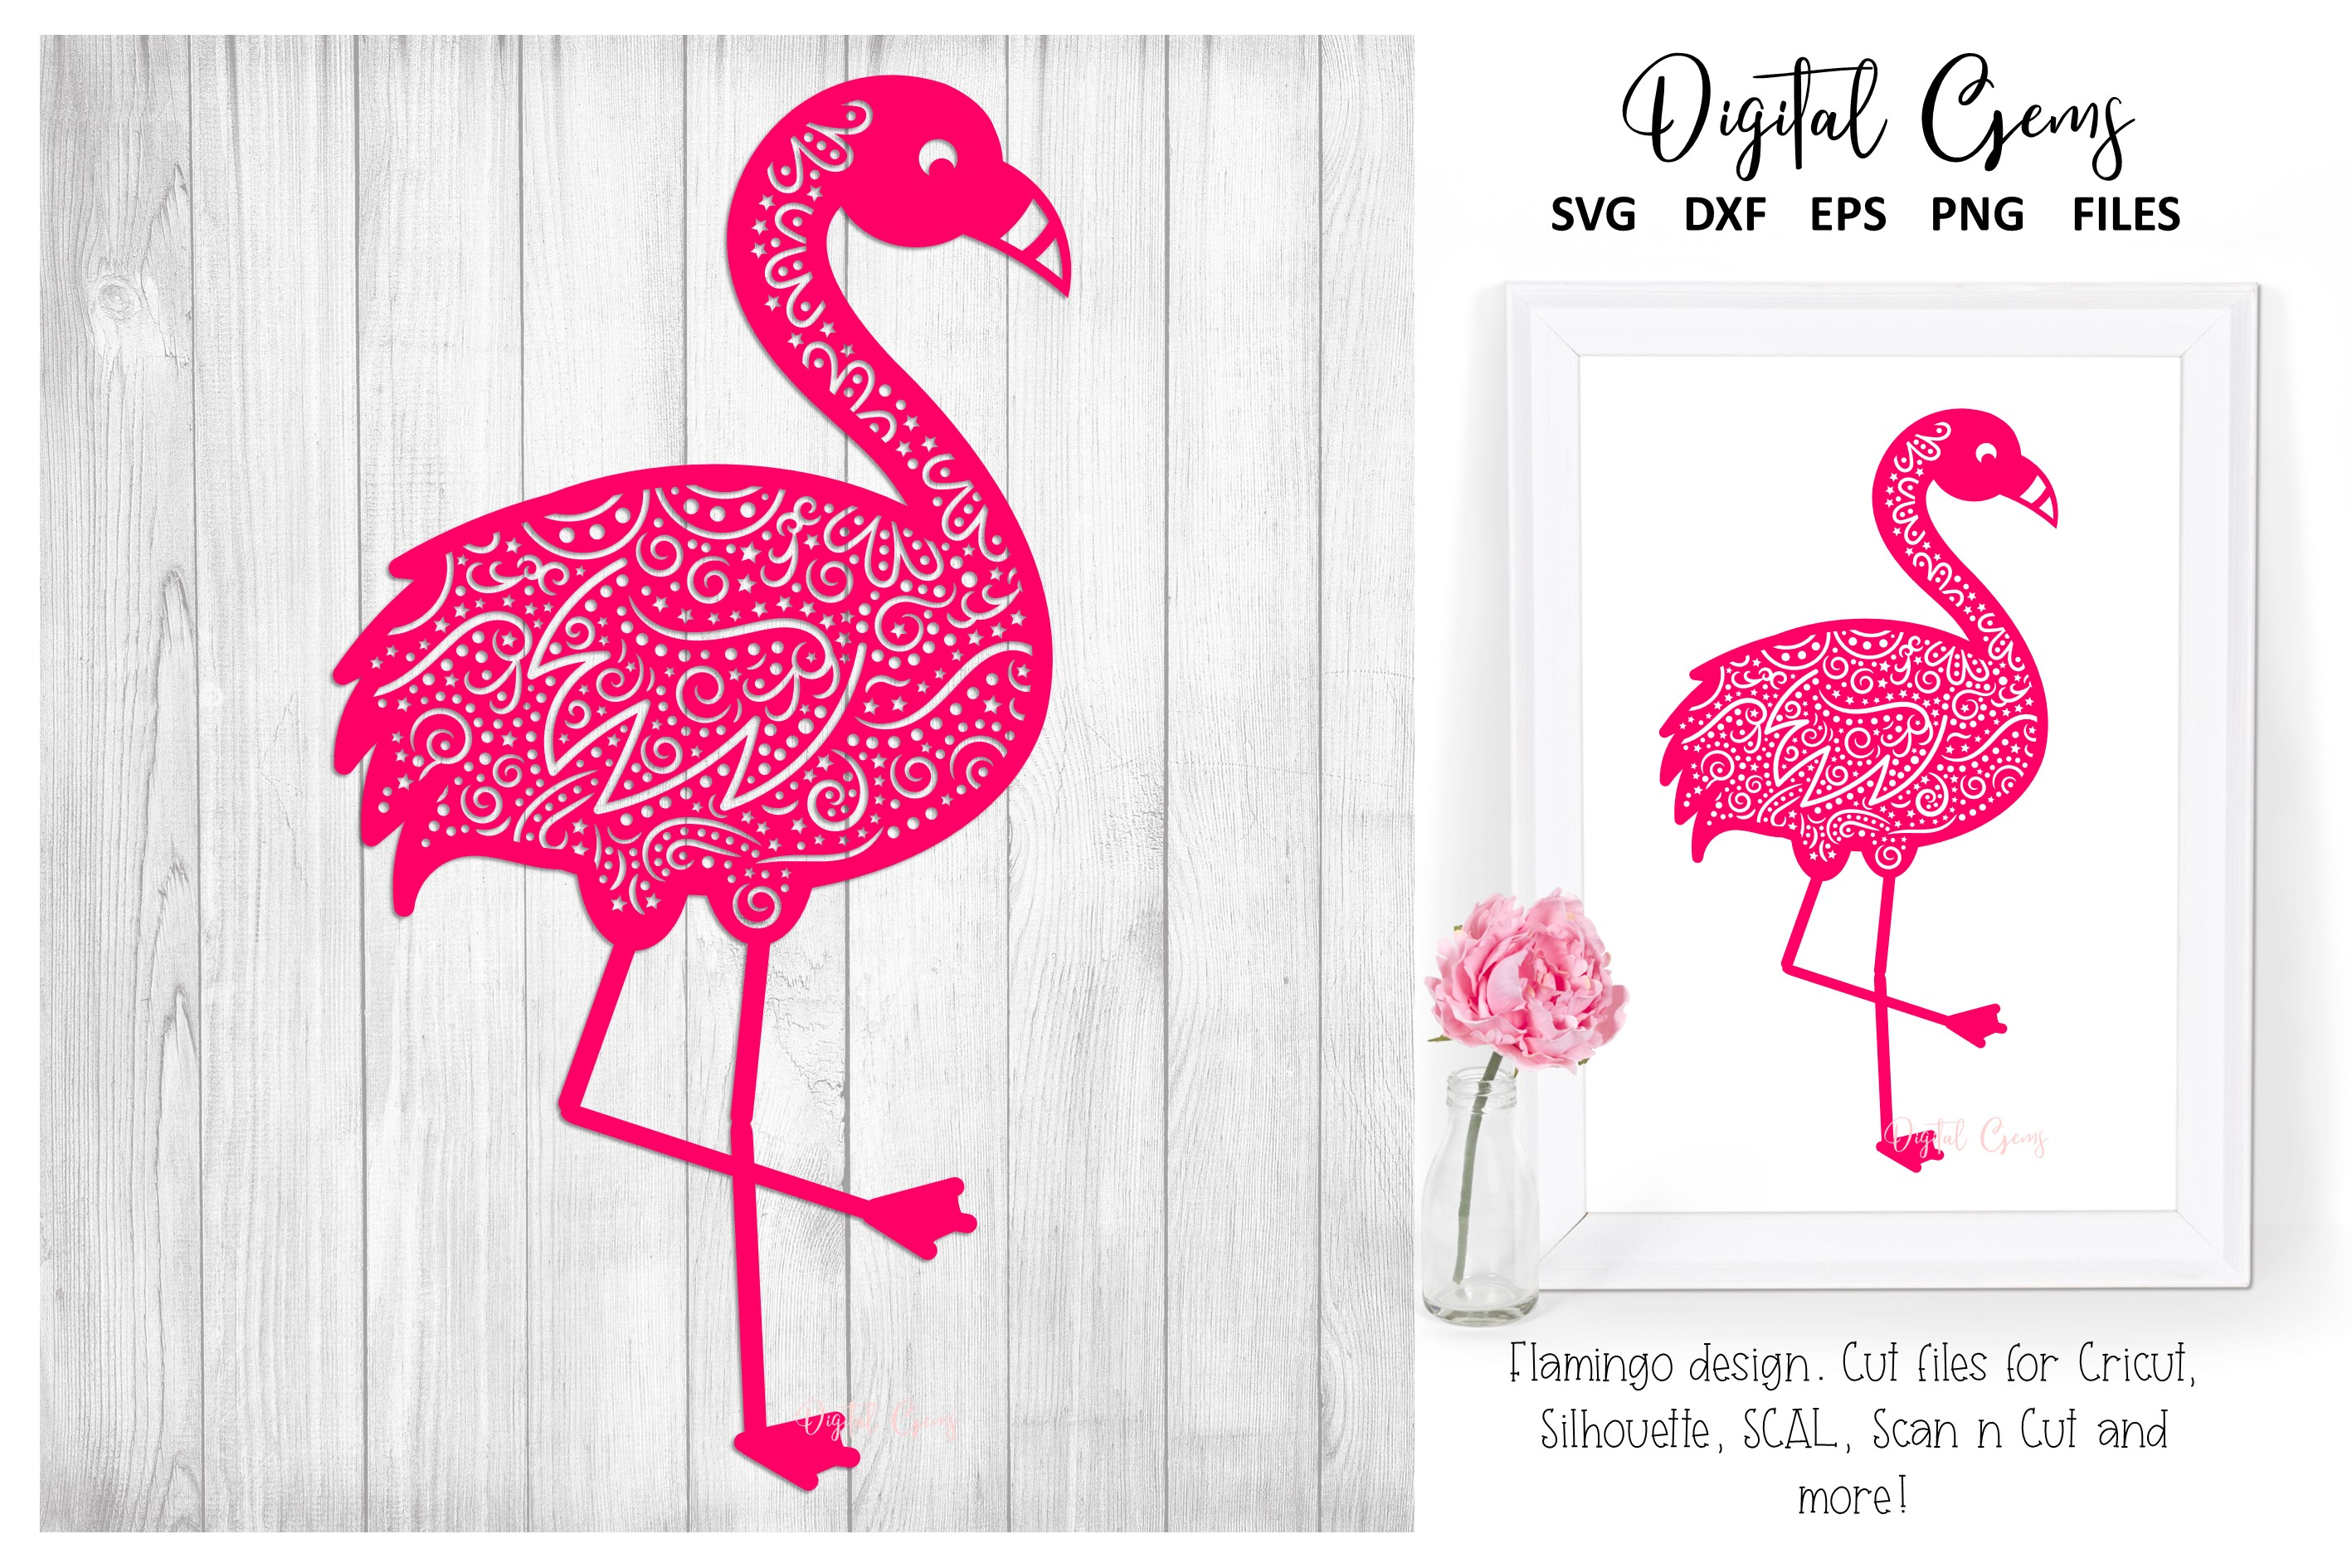 Download Free Flamingo Design Graphic By Digital Gems Creative Fabrica for Cricut Explore, Silhouette and other cutting machines.